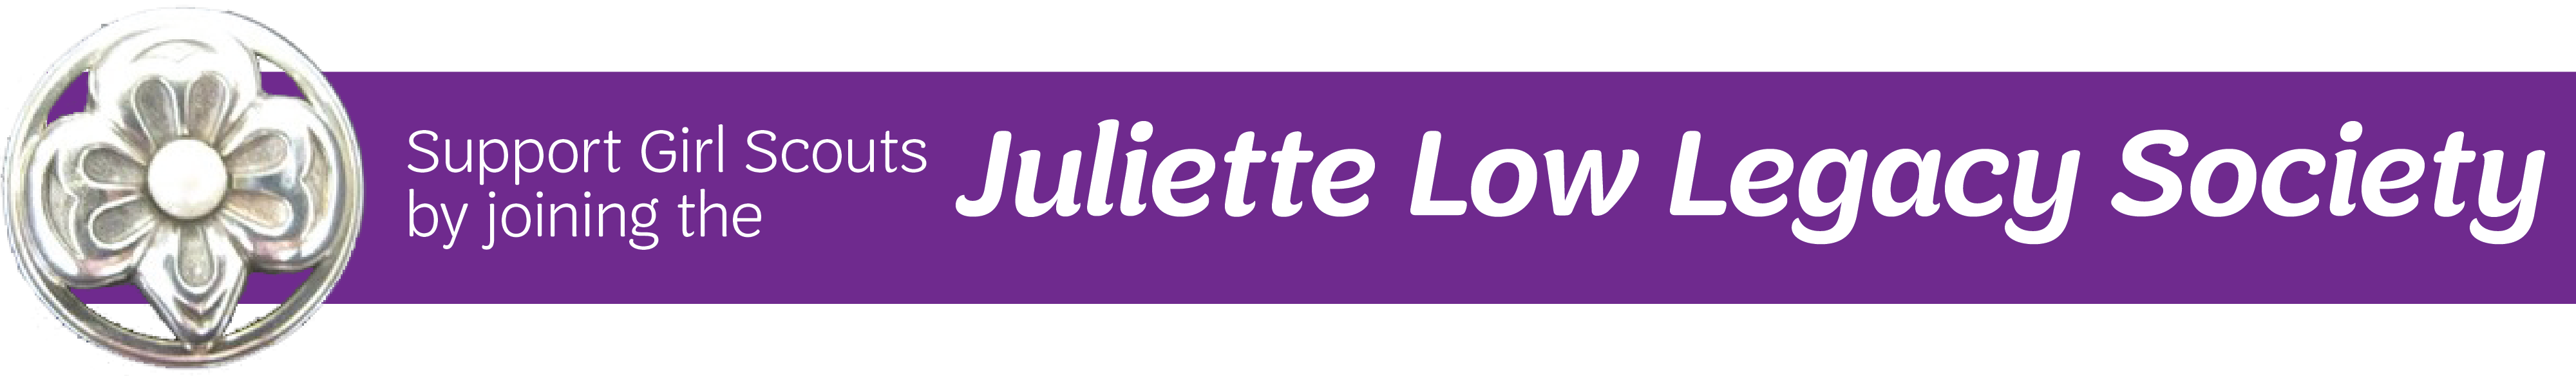 Juliette Low Legacy Society